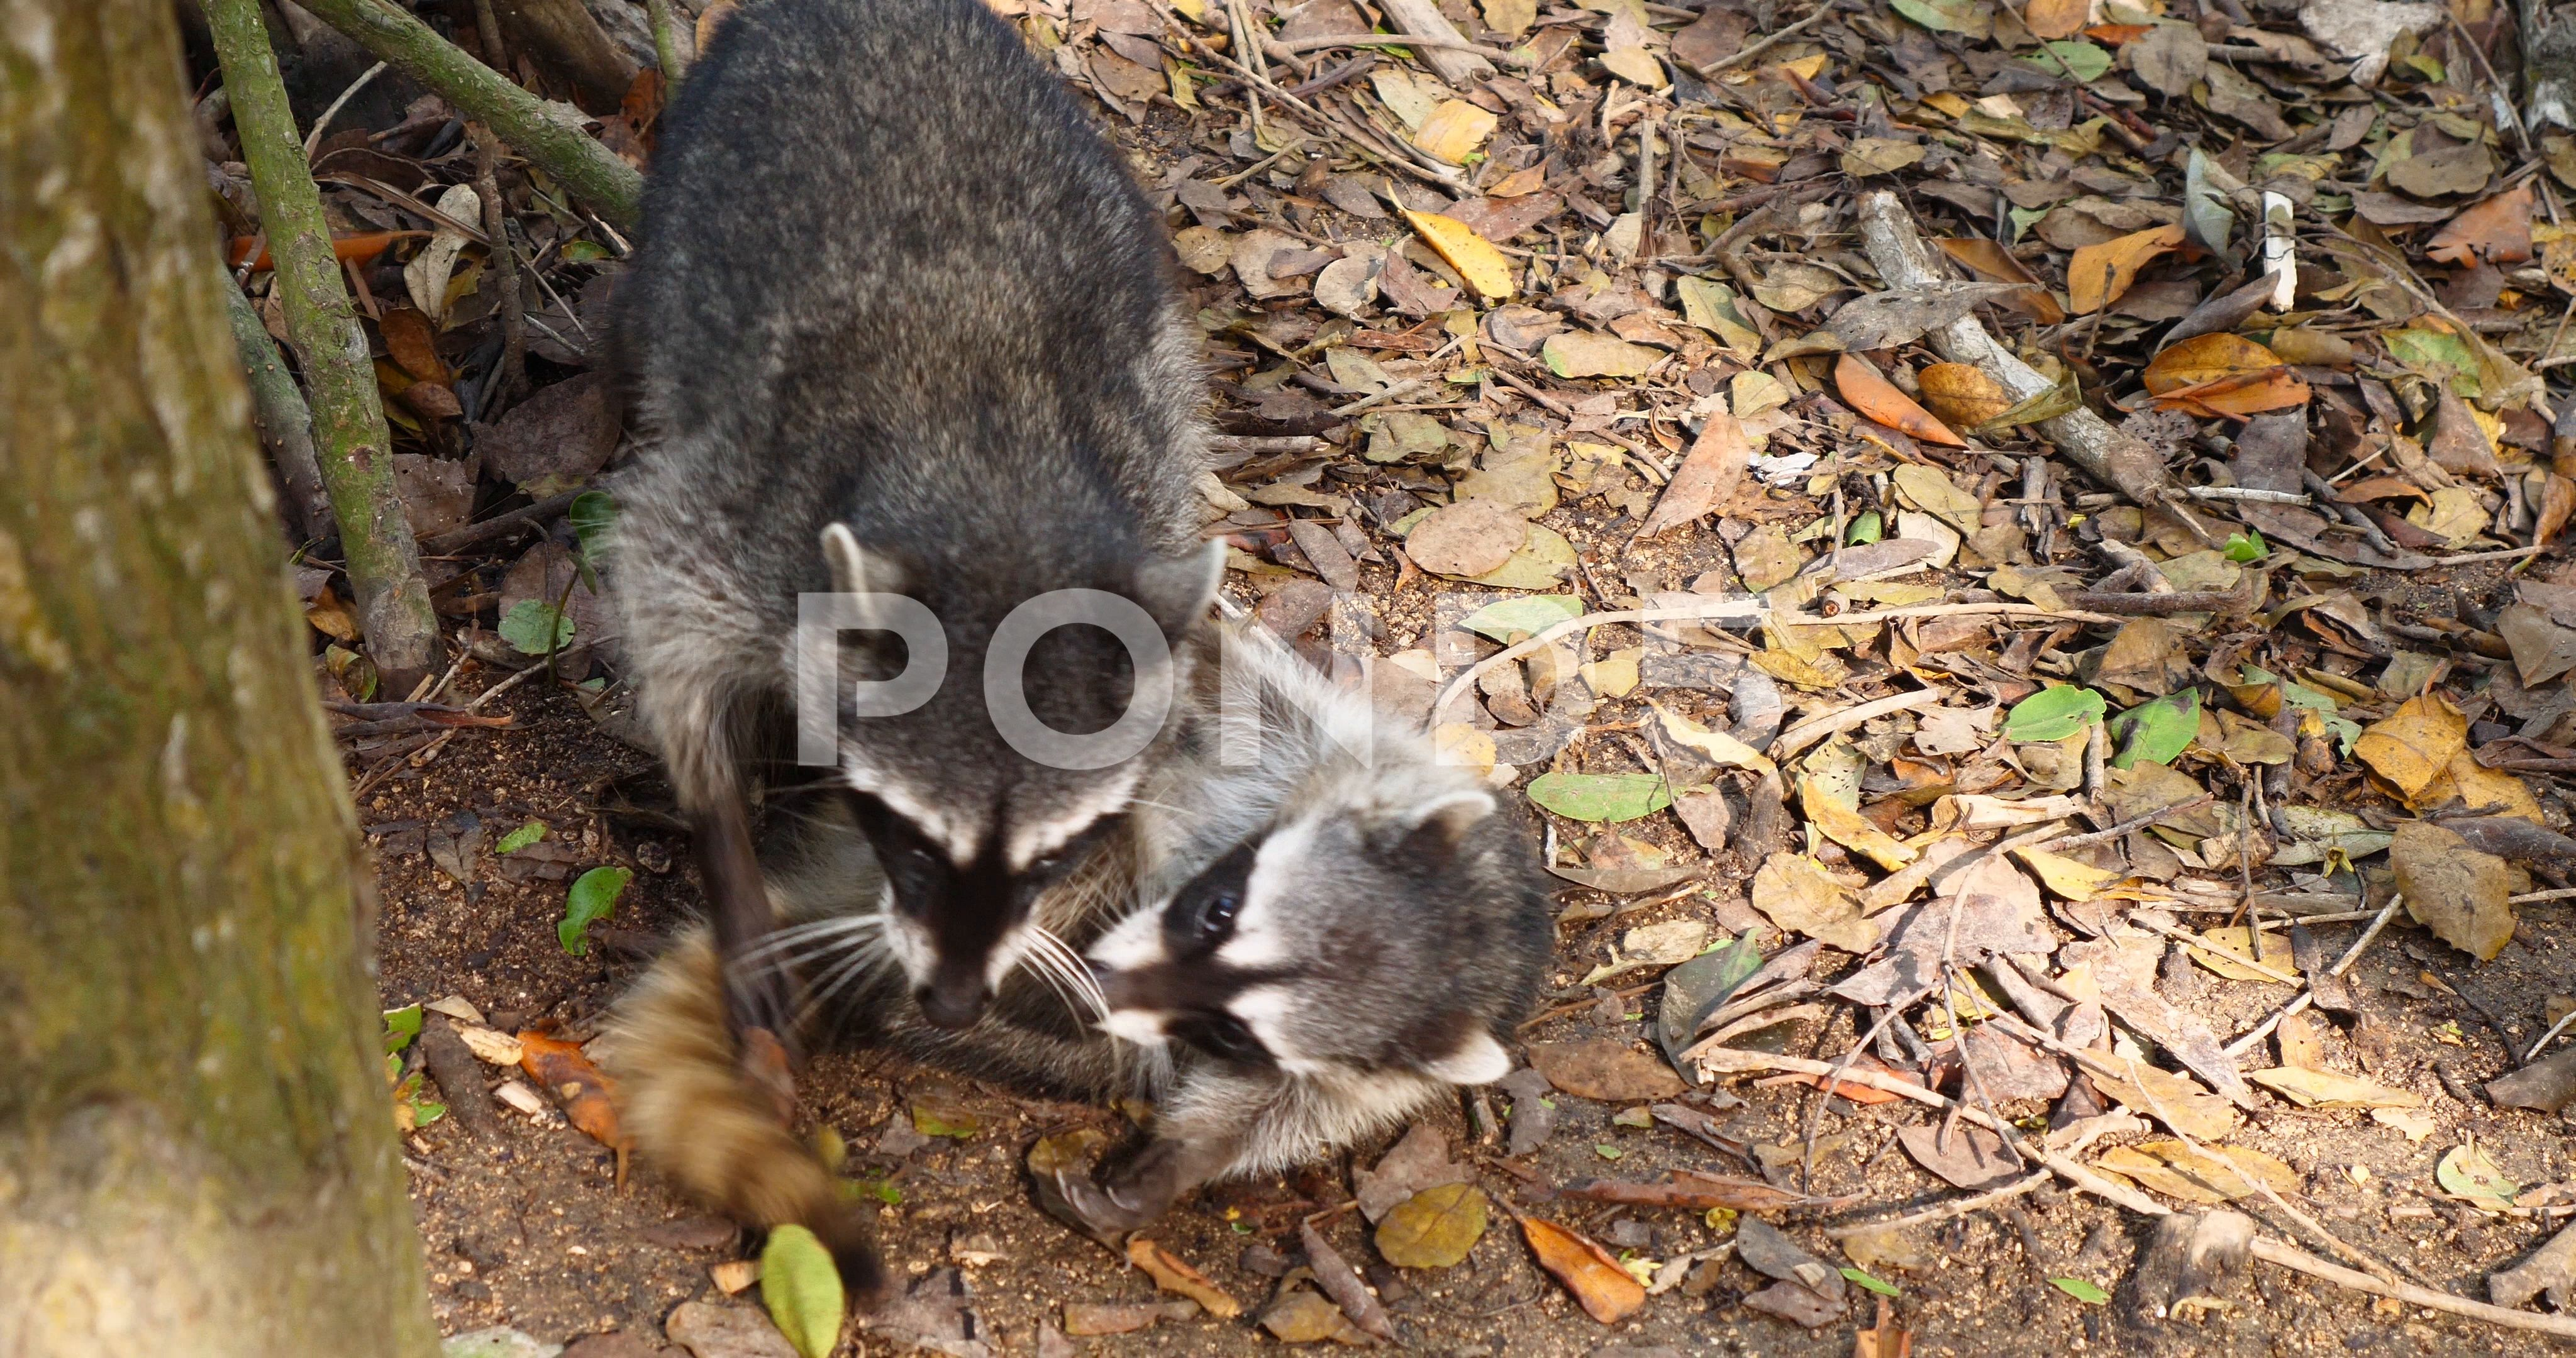 Wild Raccoon animals playing attack with baby raccoon